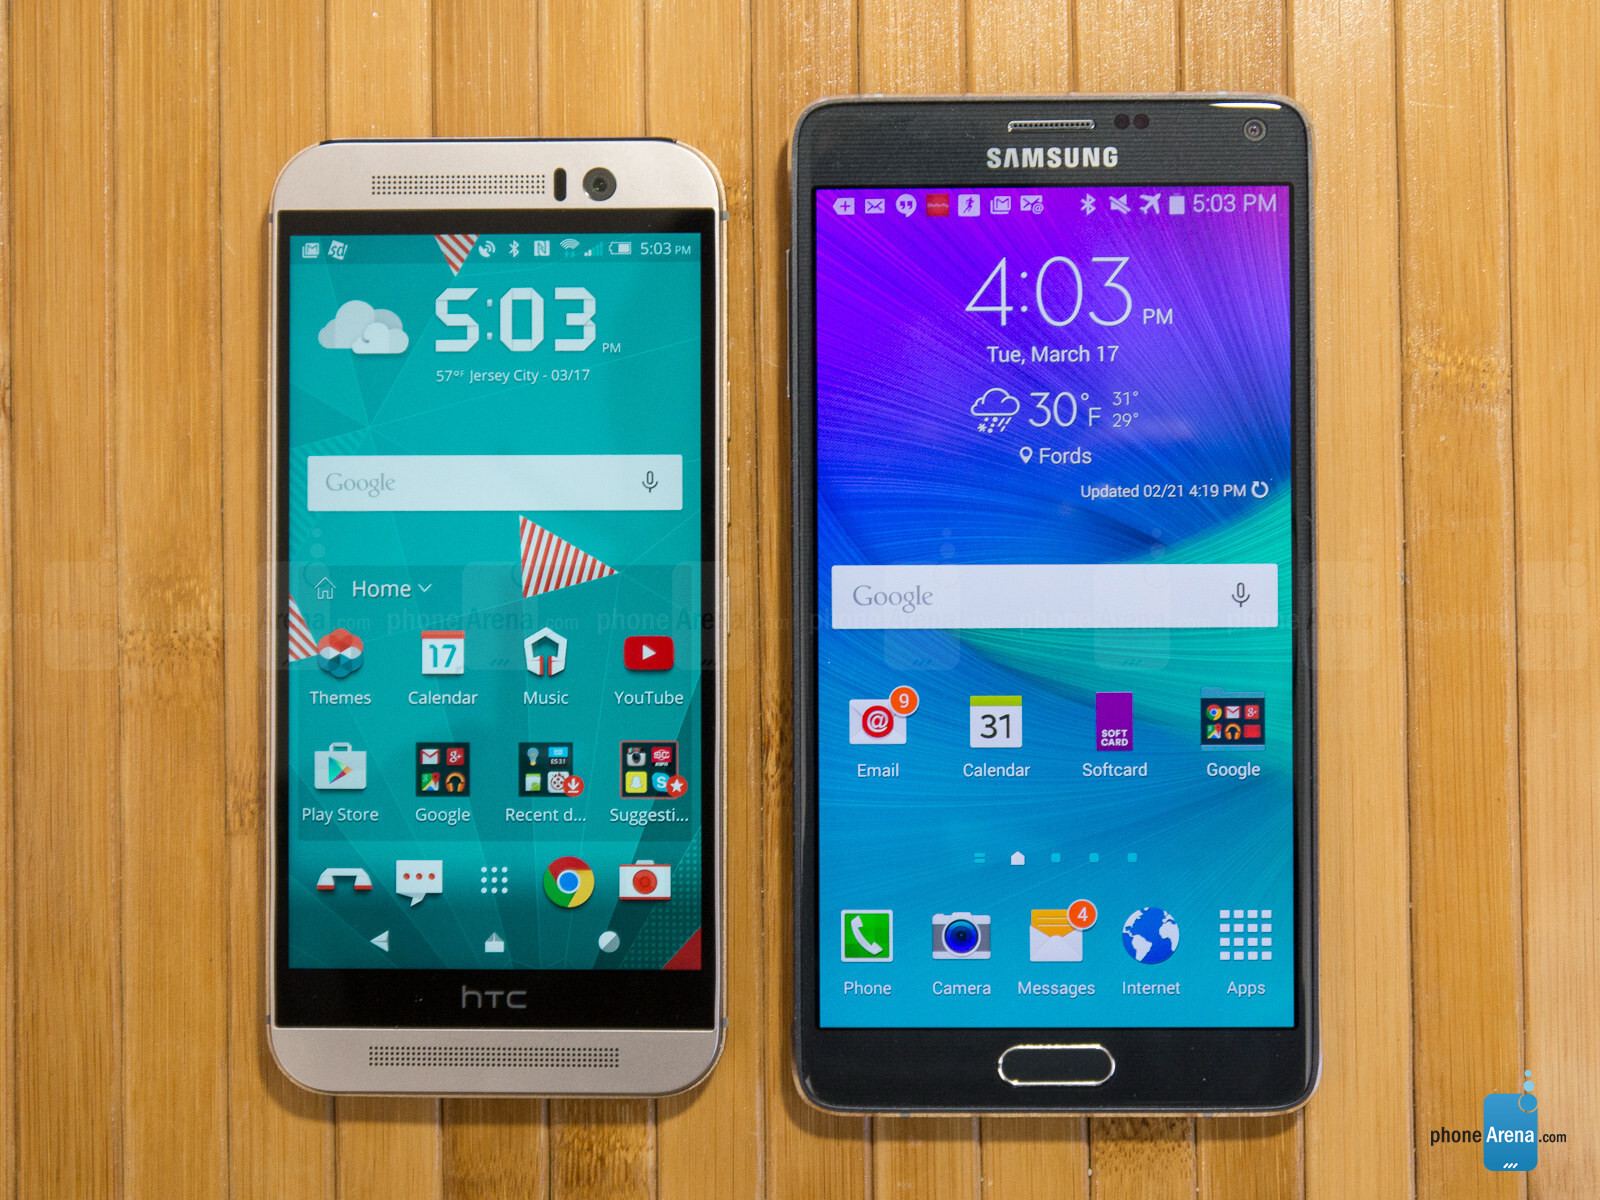 Samsung Galaxy Note 4 vs HTC One M9: which phone is faster? (real